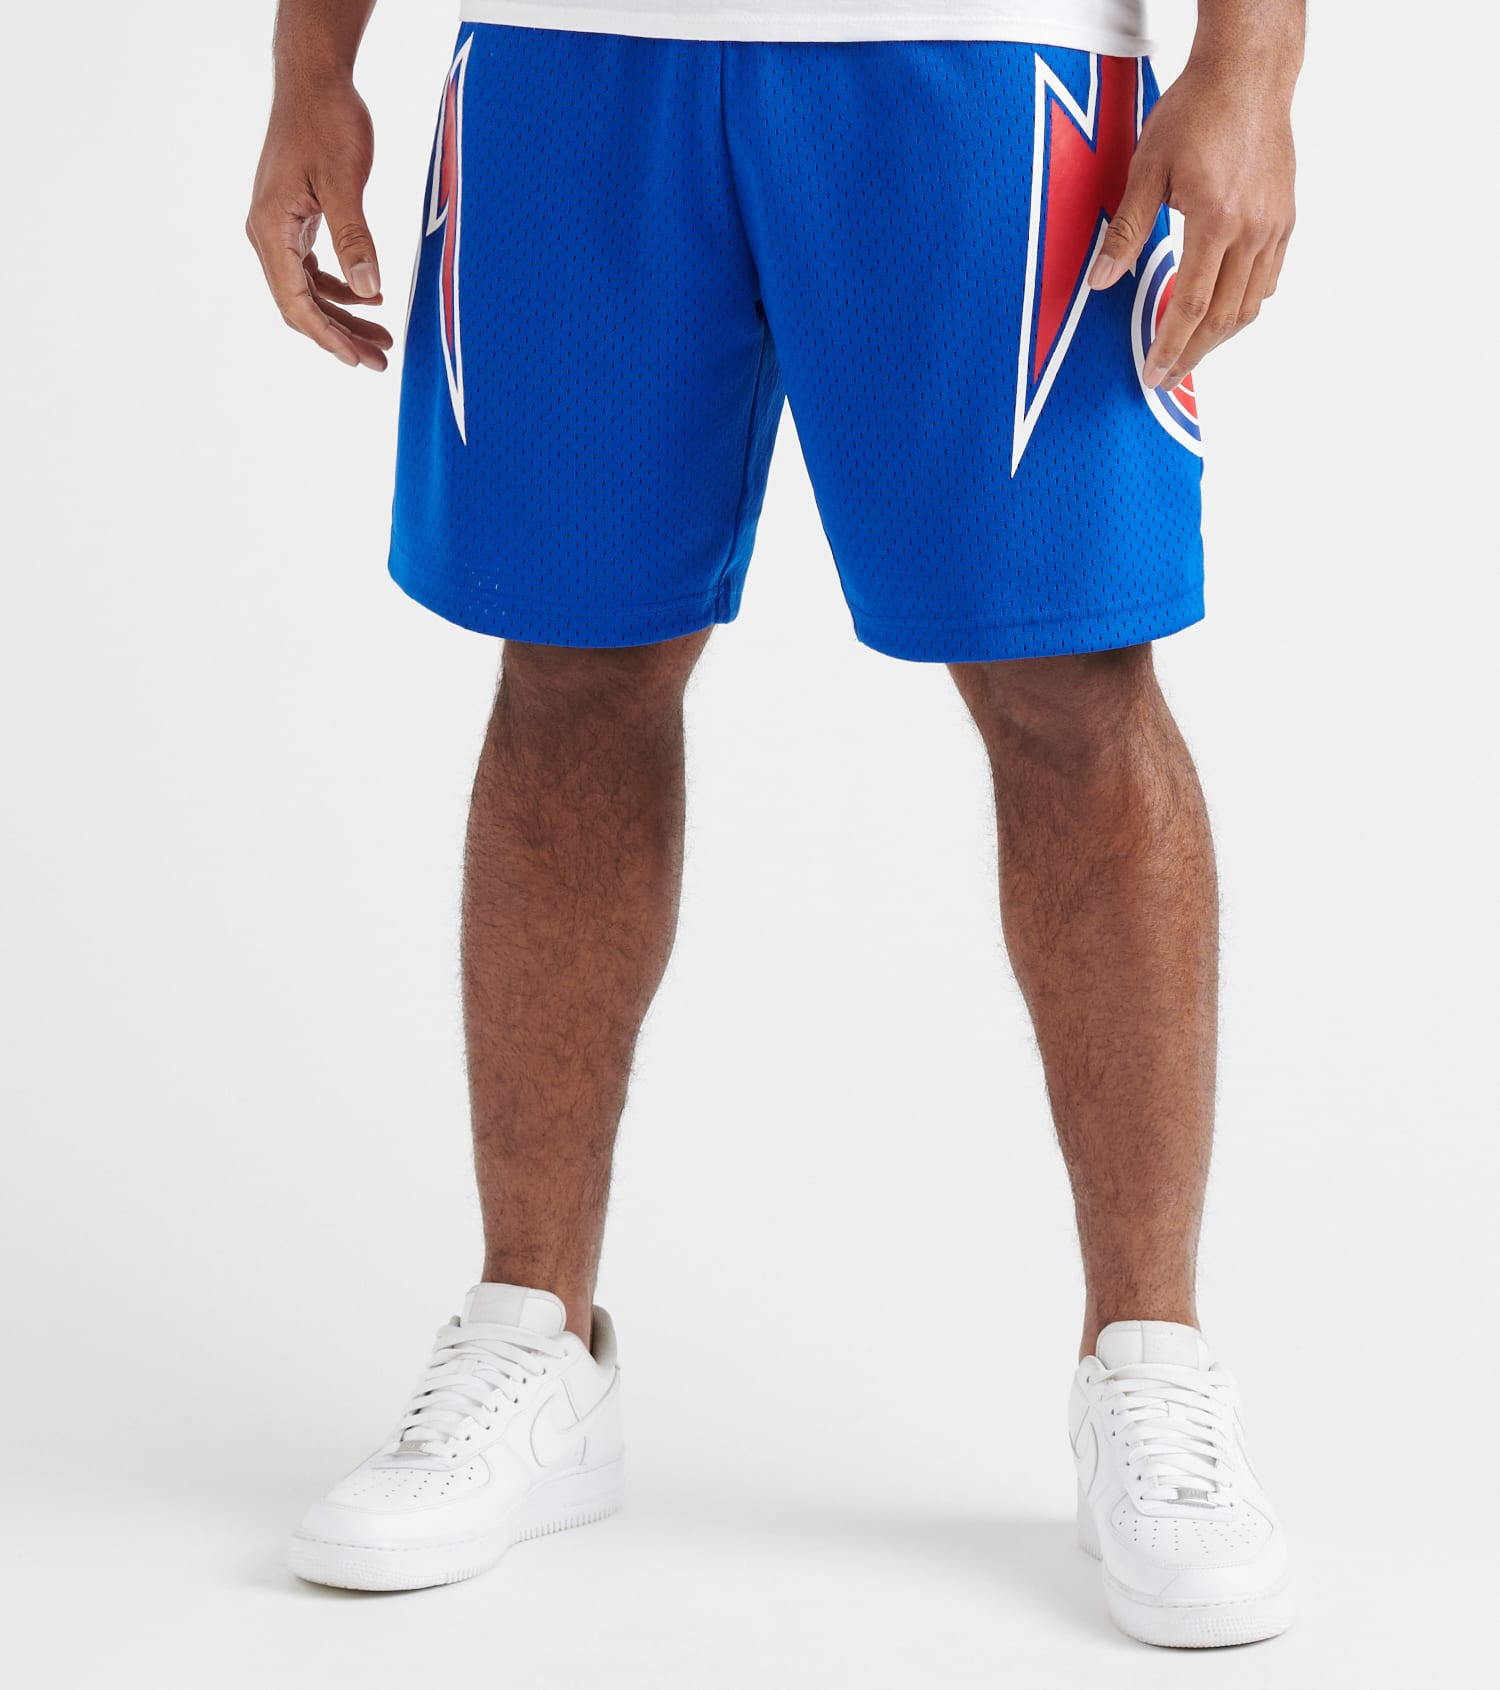 brand new 14f0b 76a07 Detroit Pistons Swingman Shorts